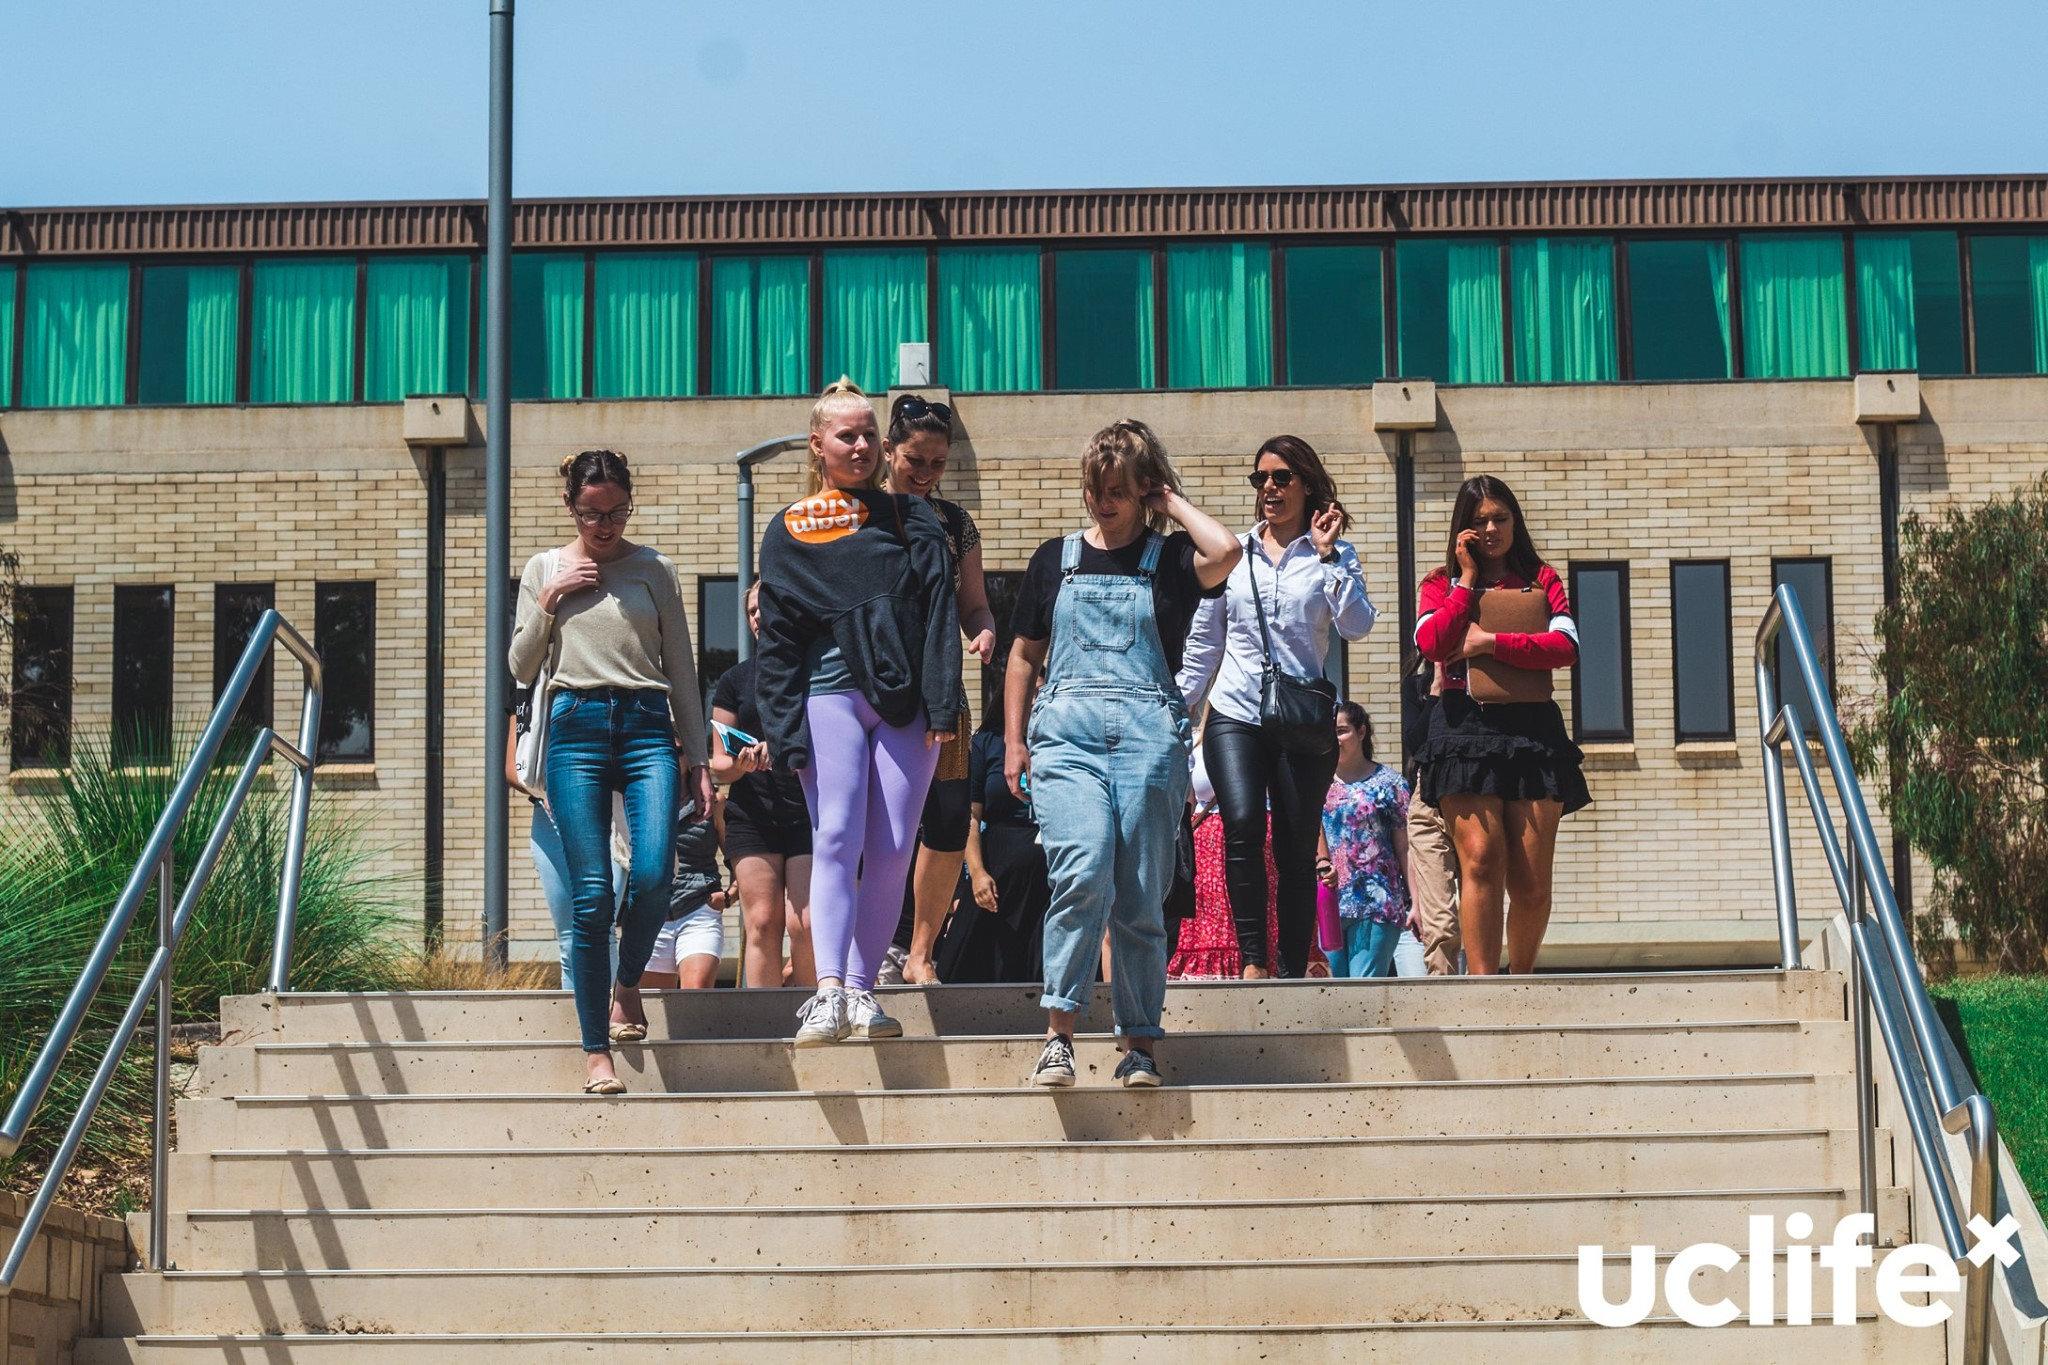 New students walk down stairs towards UC concourse to join UC O-week activities